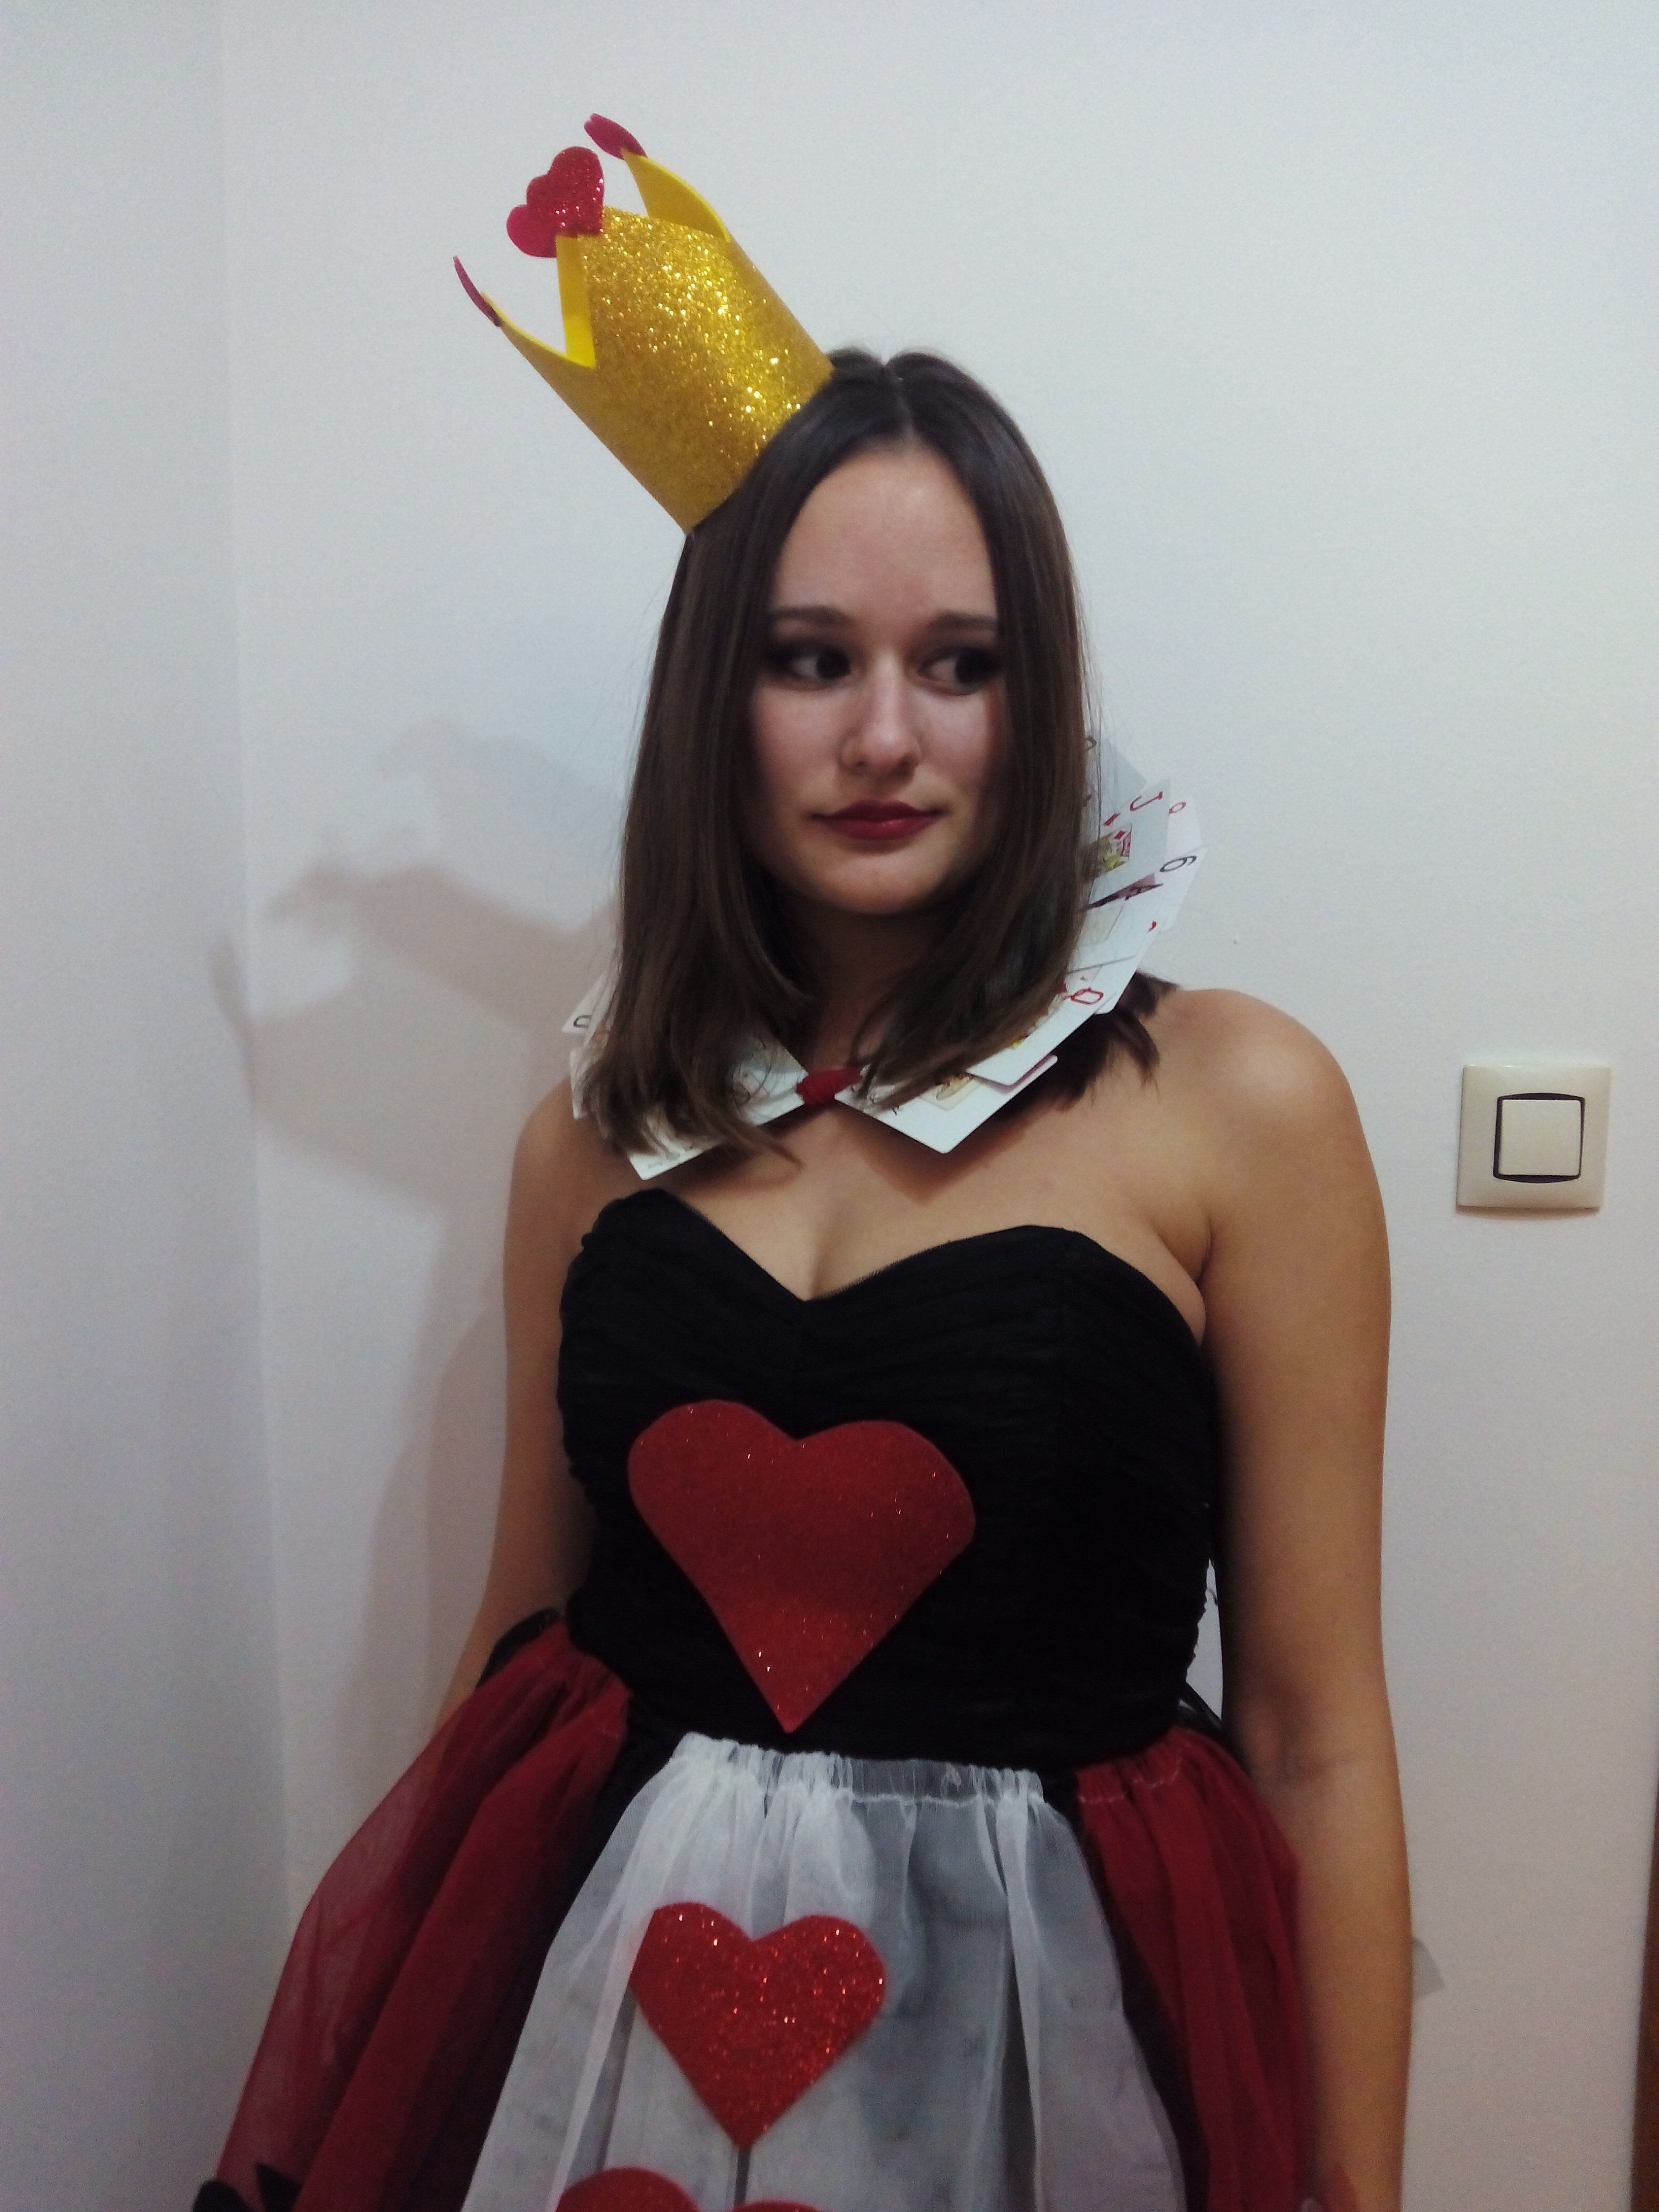 DIY disfraz reina de corazones # DIY queen of hearts costume